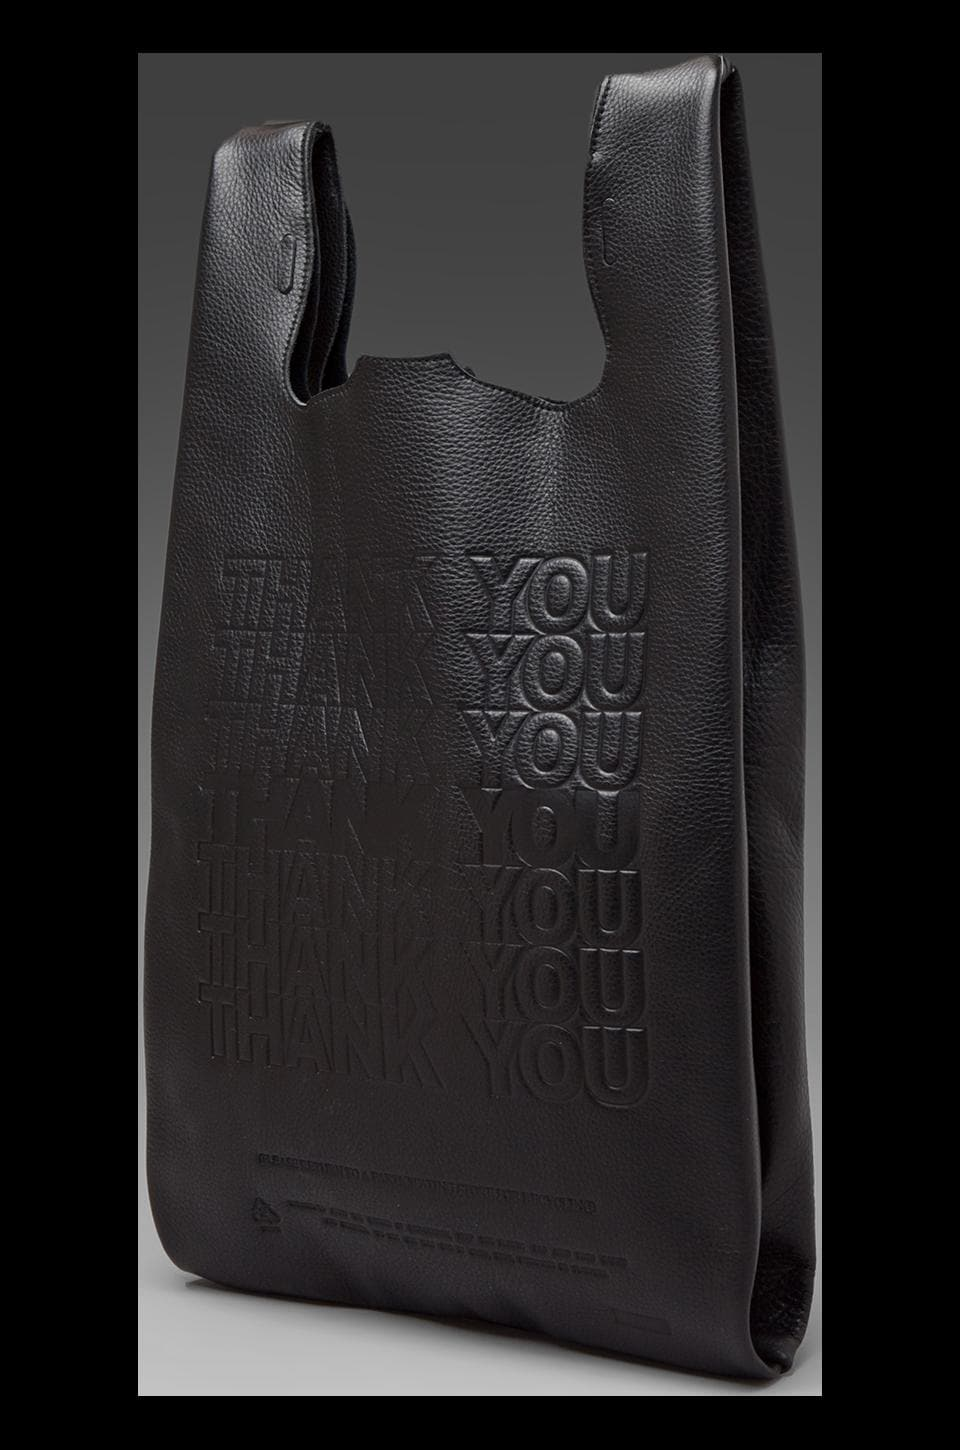 Cast of Vices Thank You Corner Store Leather To-Go Bag in Black